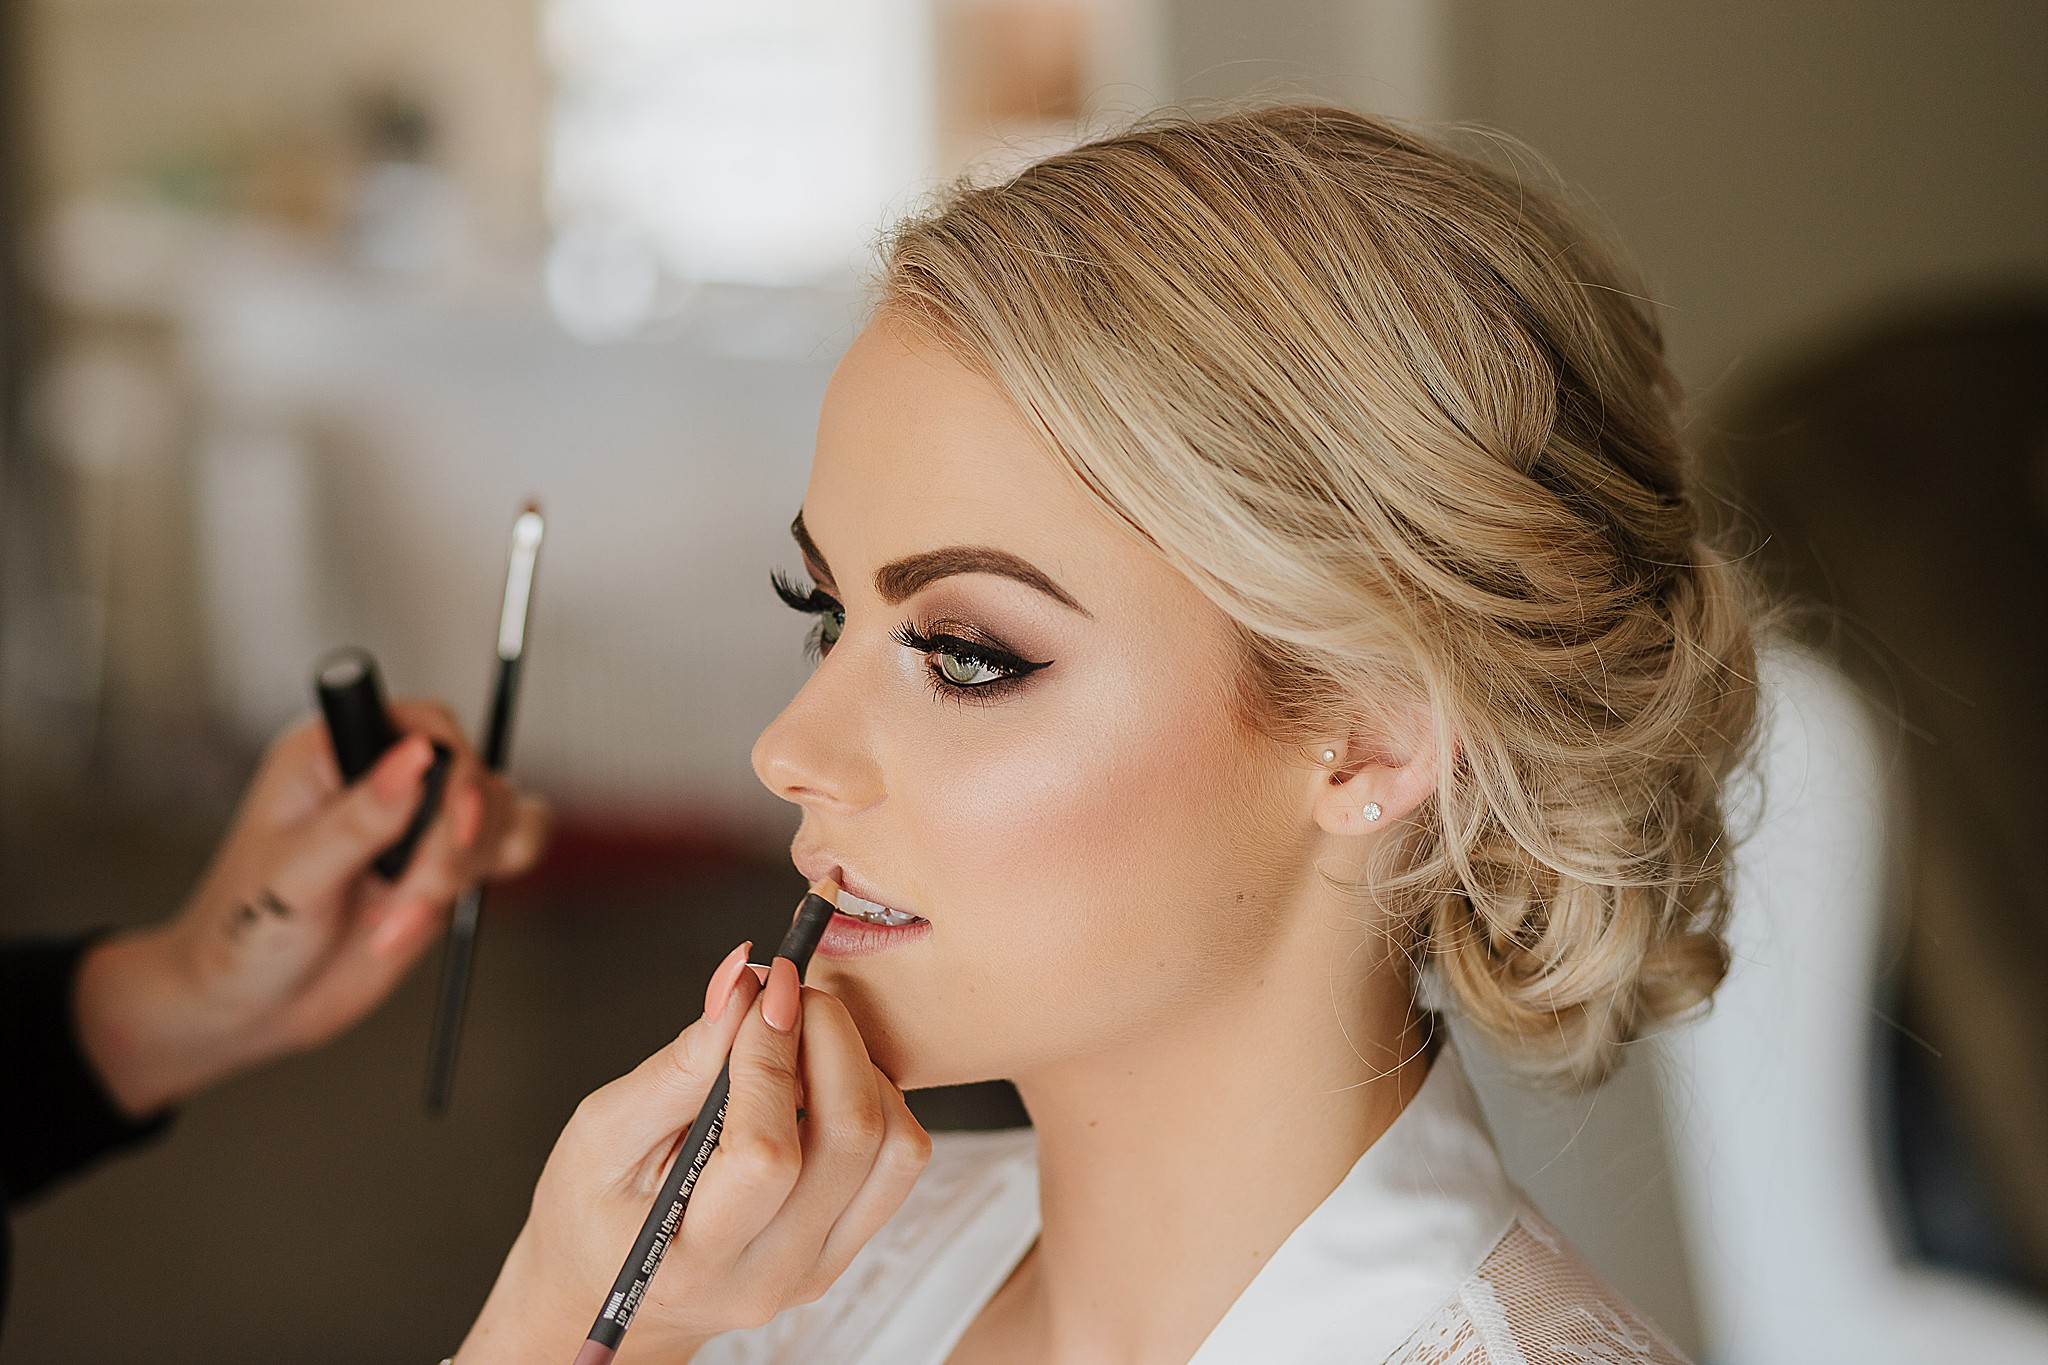 Georgia getting ready Wedding Photo shoot